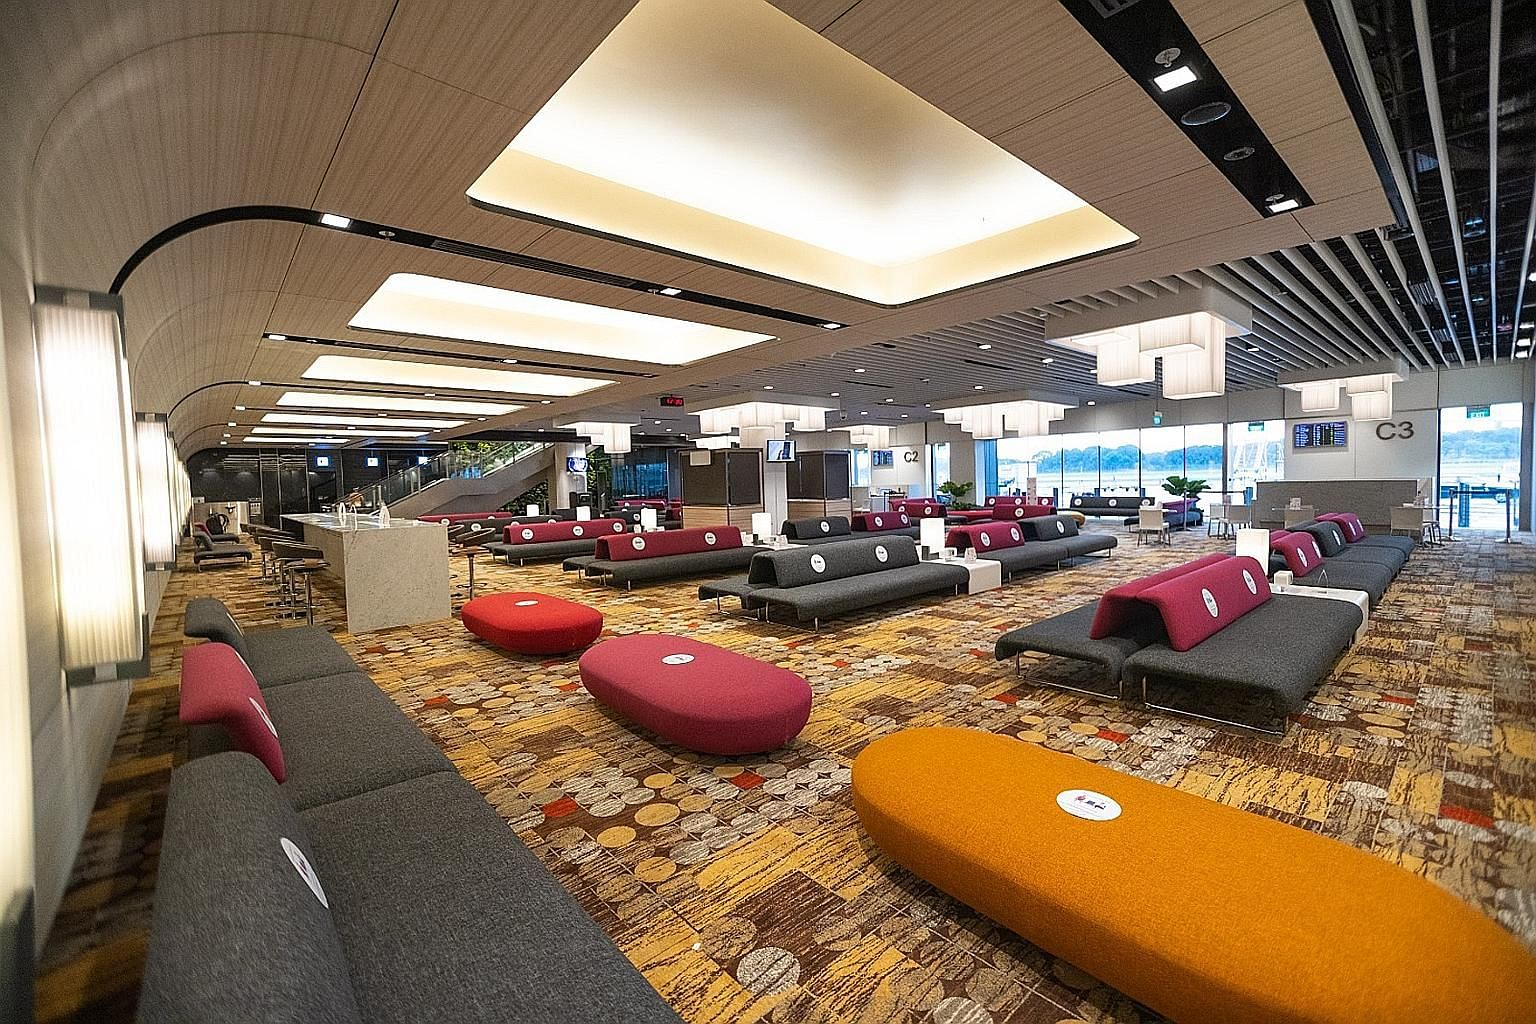 The new transit holding area in Terminal 1. Safety measures include regular deep cleaning and disinfection, said CAG. PHOTO: CHANGI AIRPORT GROUP